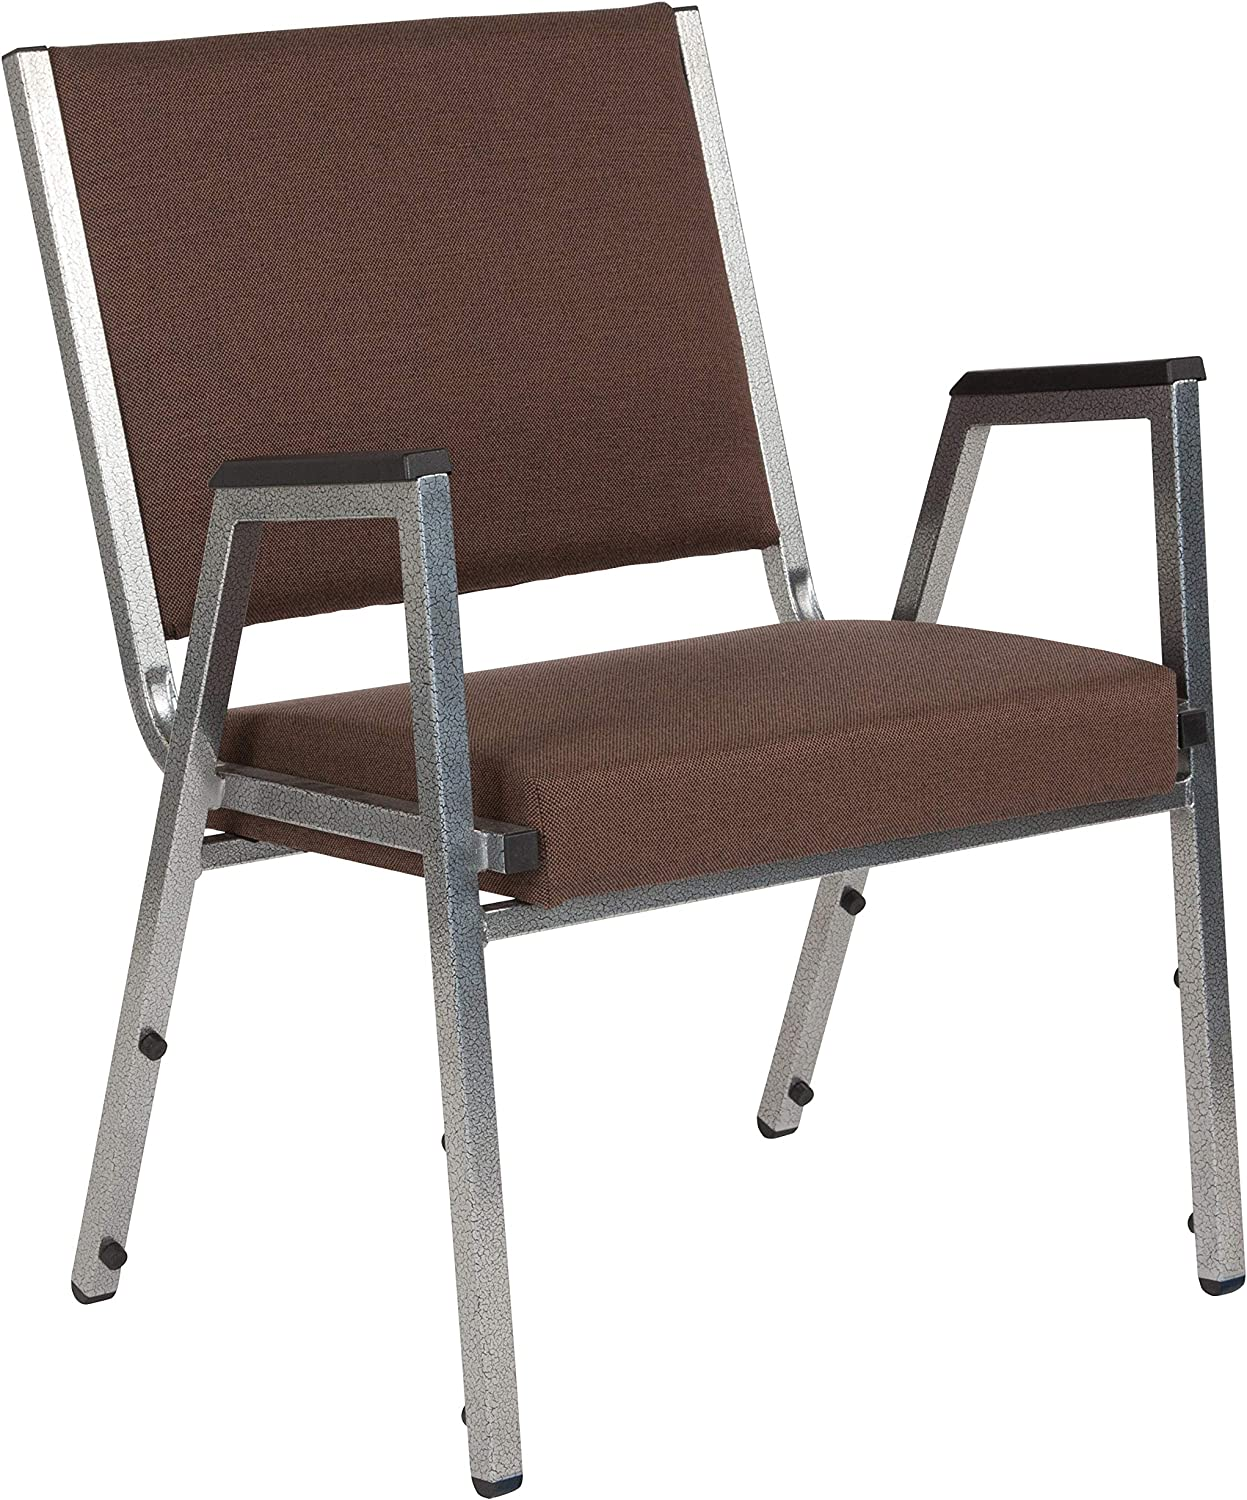 Flash Furniture HERCULES Series 1500 lb. Rated Brown Antimicrobial Fabric Bariatric Medical Reception Arm Chair